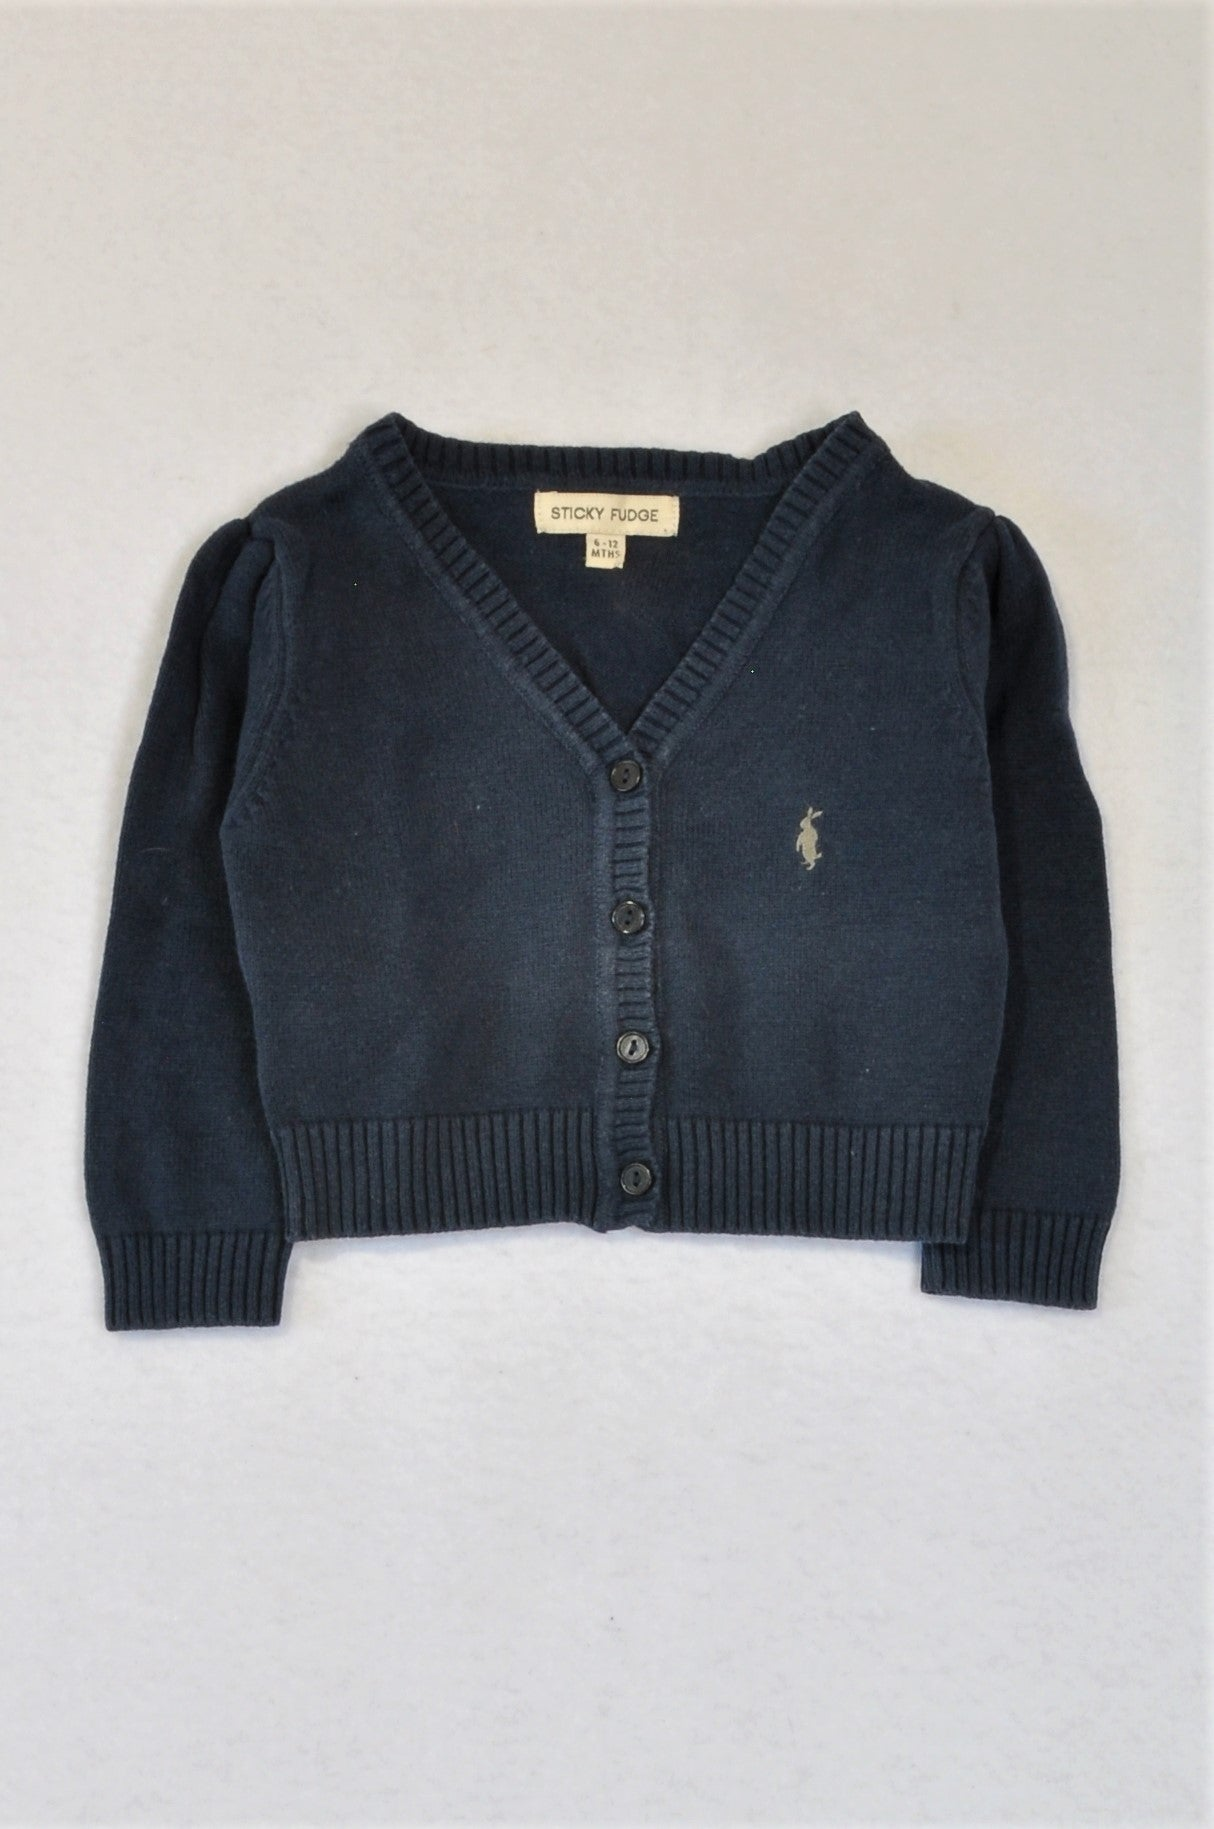 Sticky Fudge Navy Blue Knit Cardigan Unisex 6-12 months